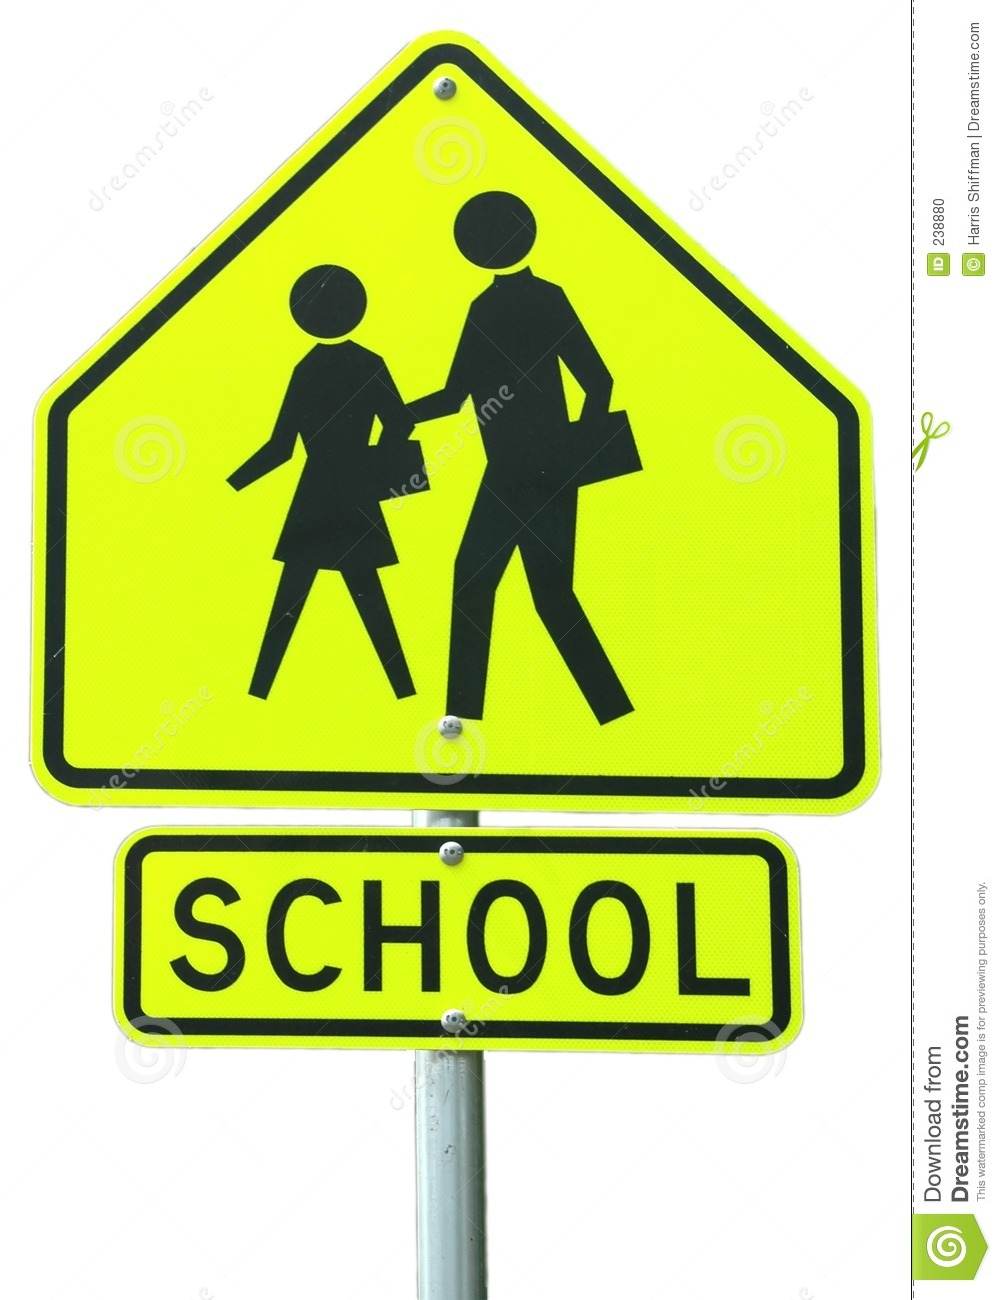 School Ahead Stock Photo.